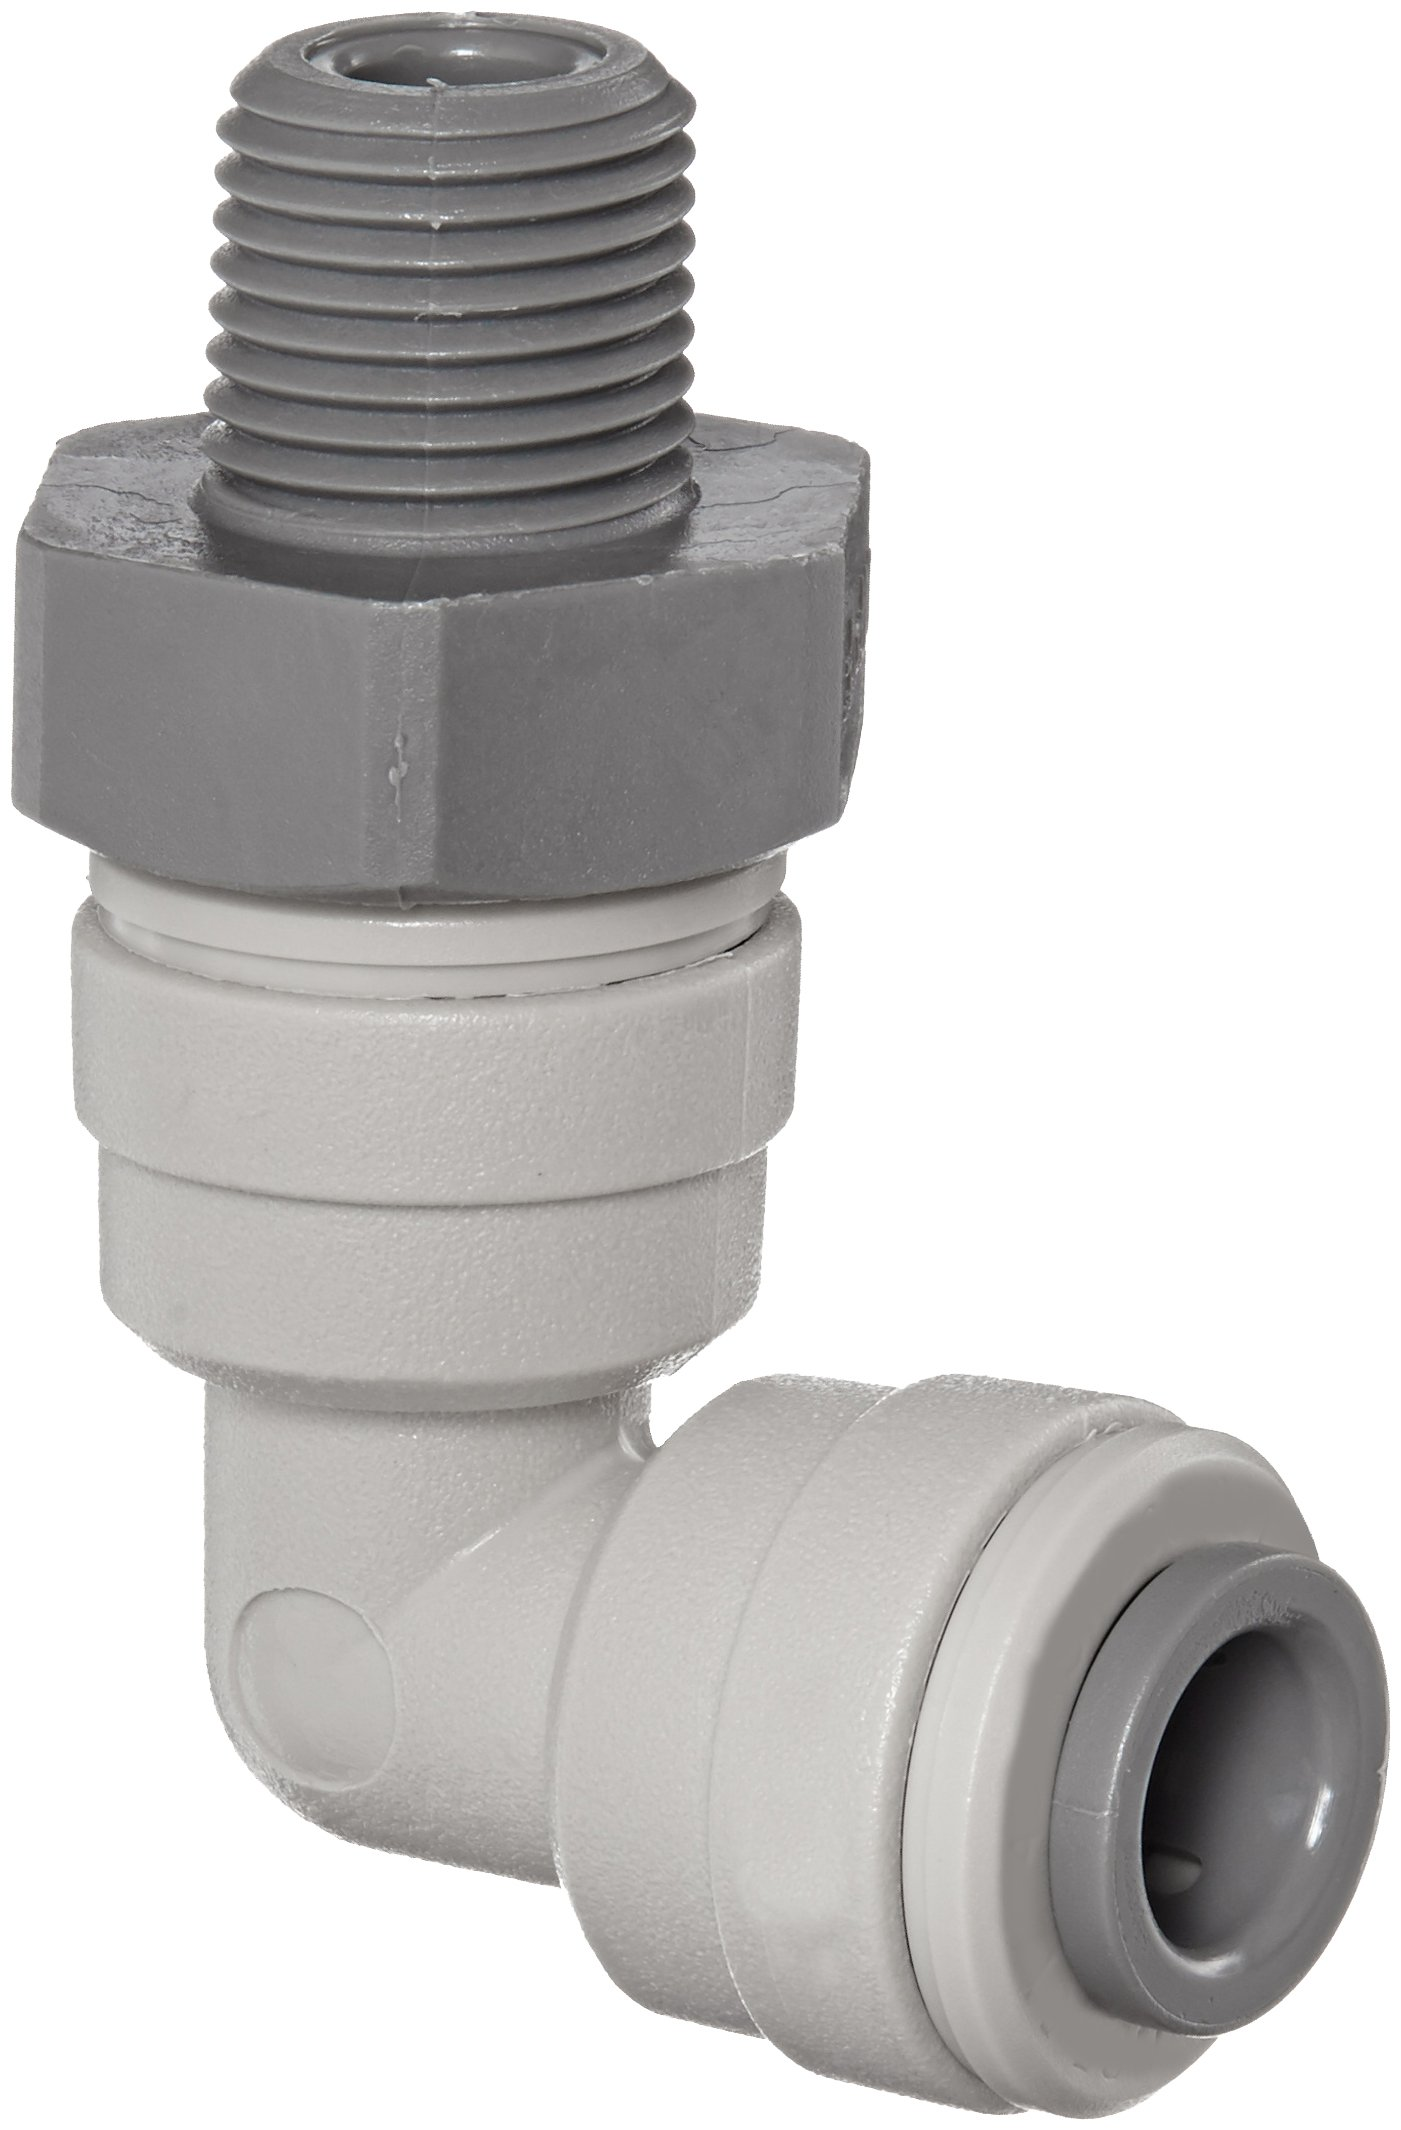 John Guest Acetal Copolymer Tube Fitting, Swivel Elbow, 1/4'' Tube OD x 1/8'' NPTF Male (Pack of 10) by John Guest